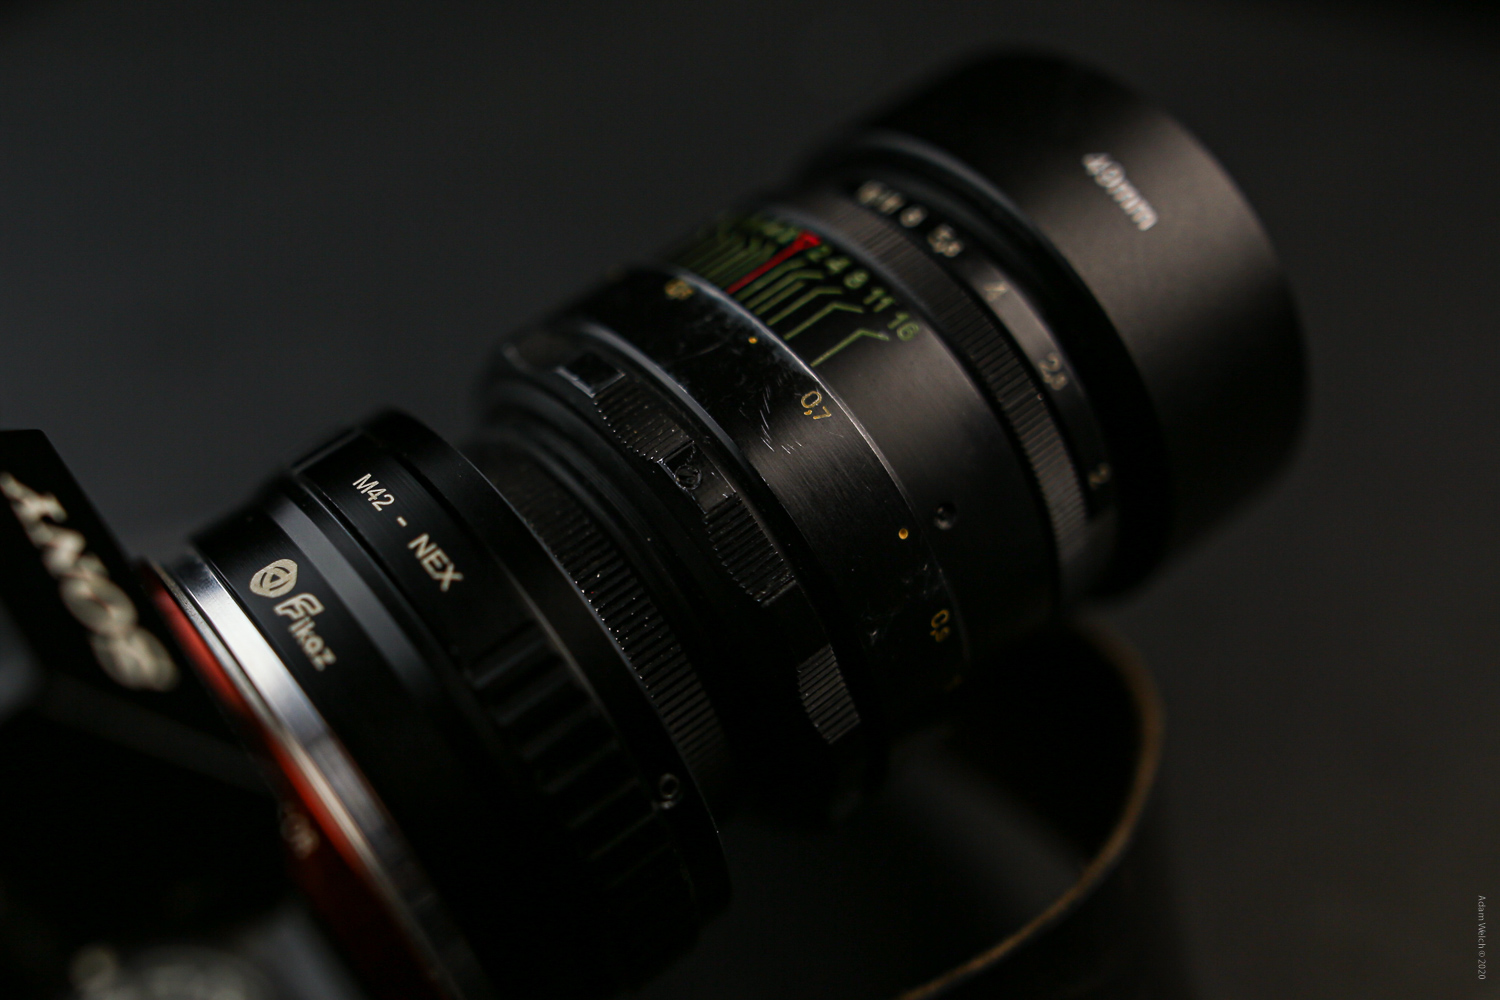 You can use old lenses with new digital cameras by means of an adapter